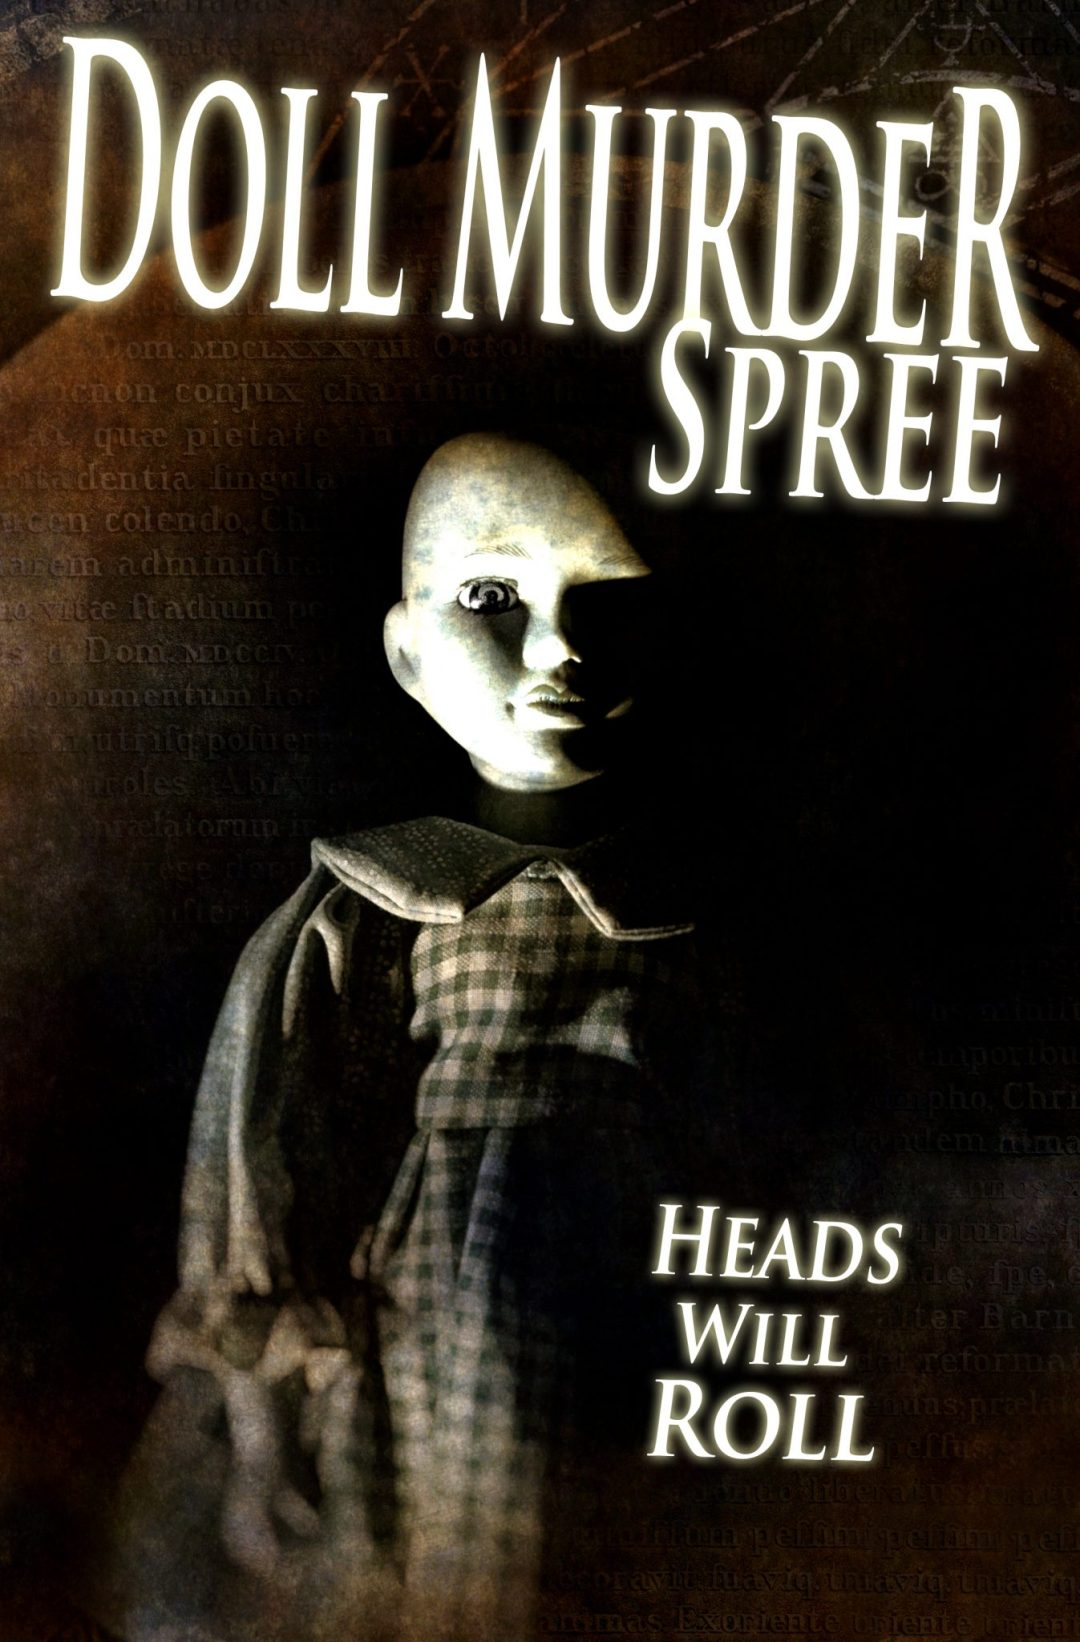 SGL Entertainment Acquires the New Horror Film 'Doll Murder Spree'